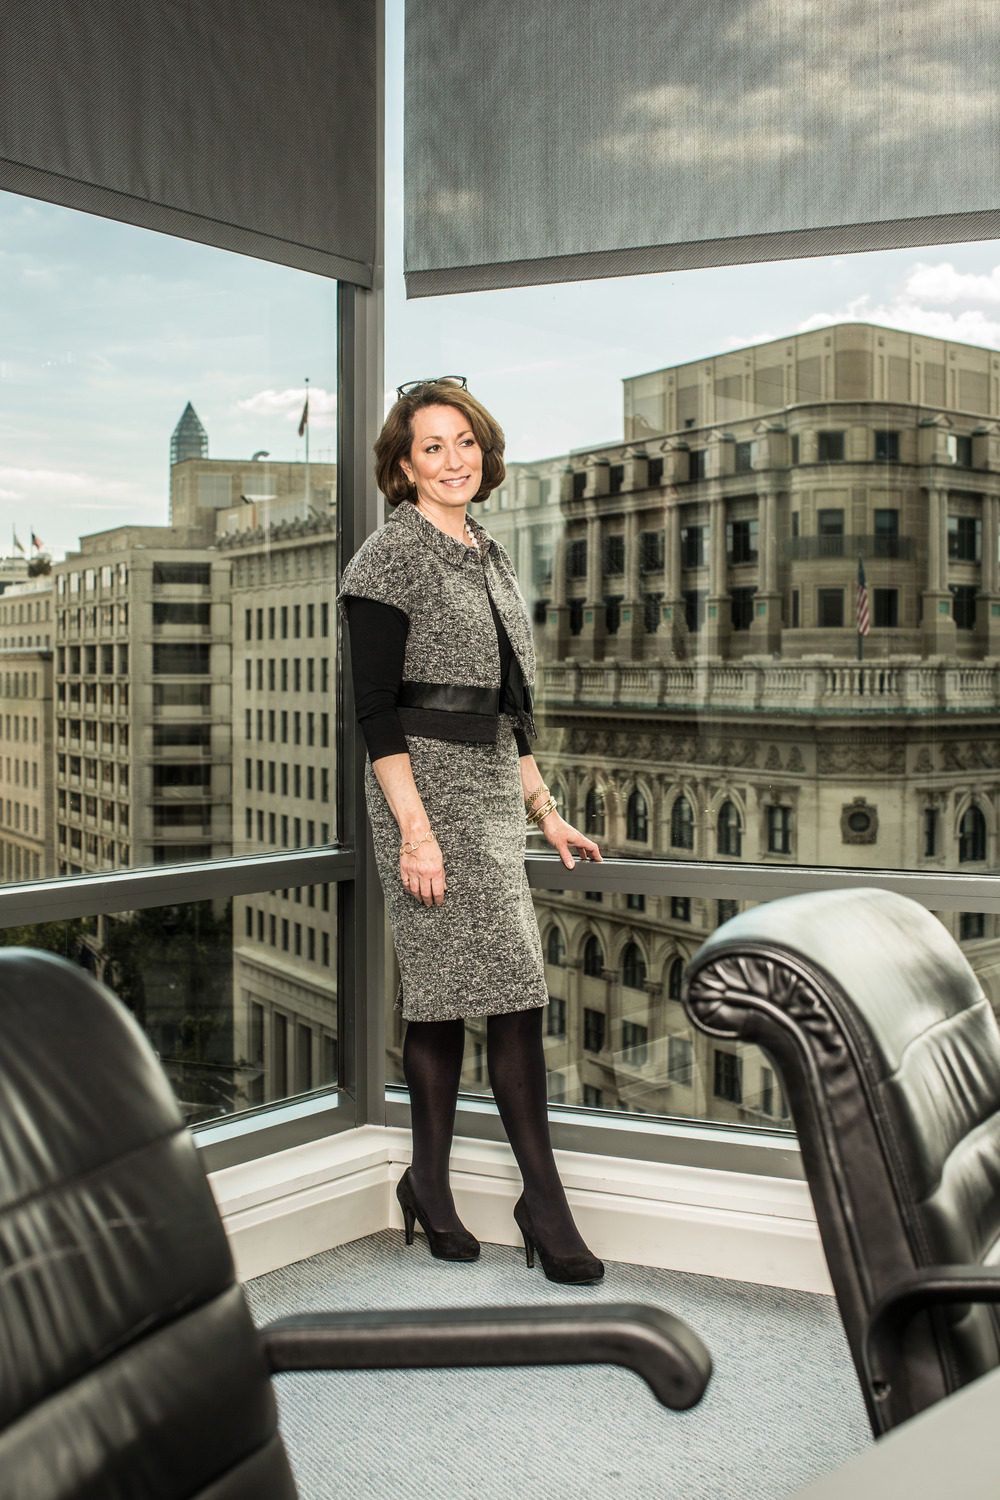 Bloomberg News Executive Editor Susan Goldberg